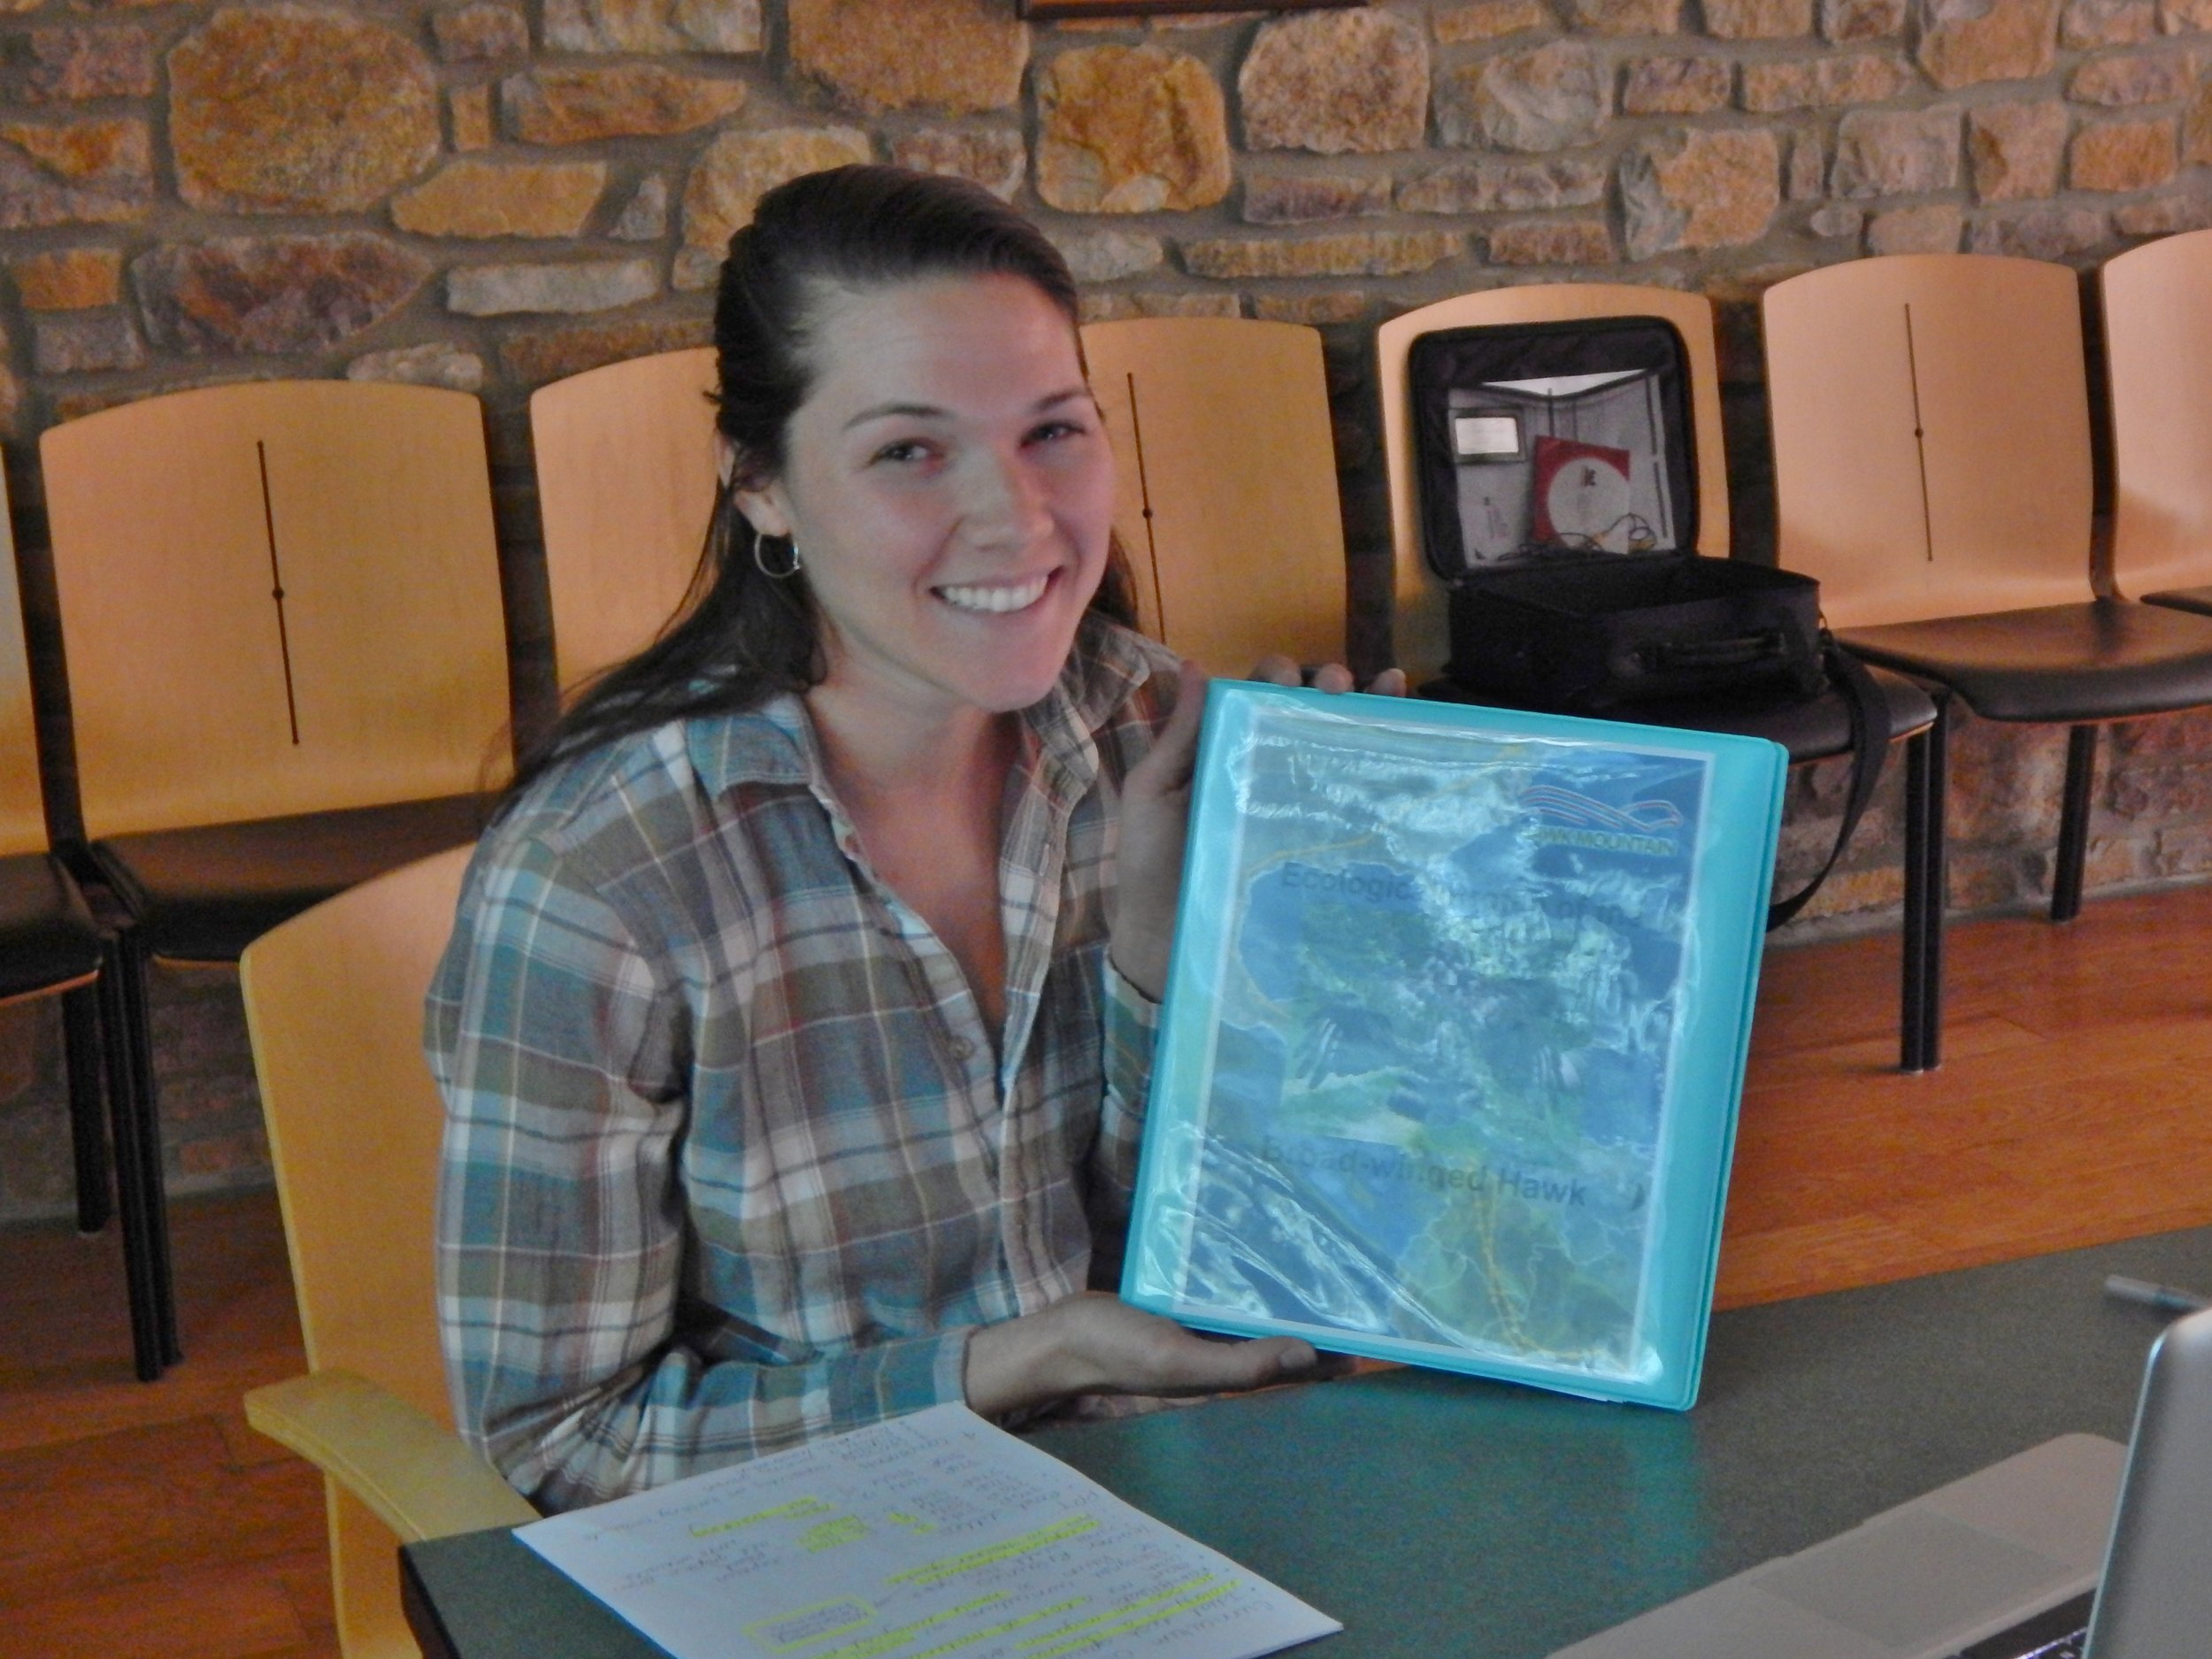 Kirsten with her Broadwing Curriculum, right before presenting it to the Hawk Mountain staff.